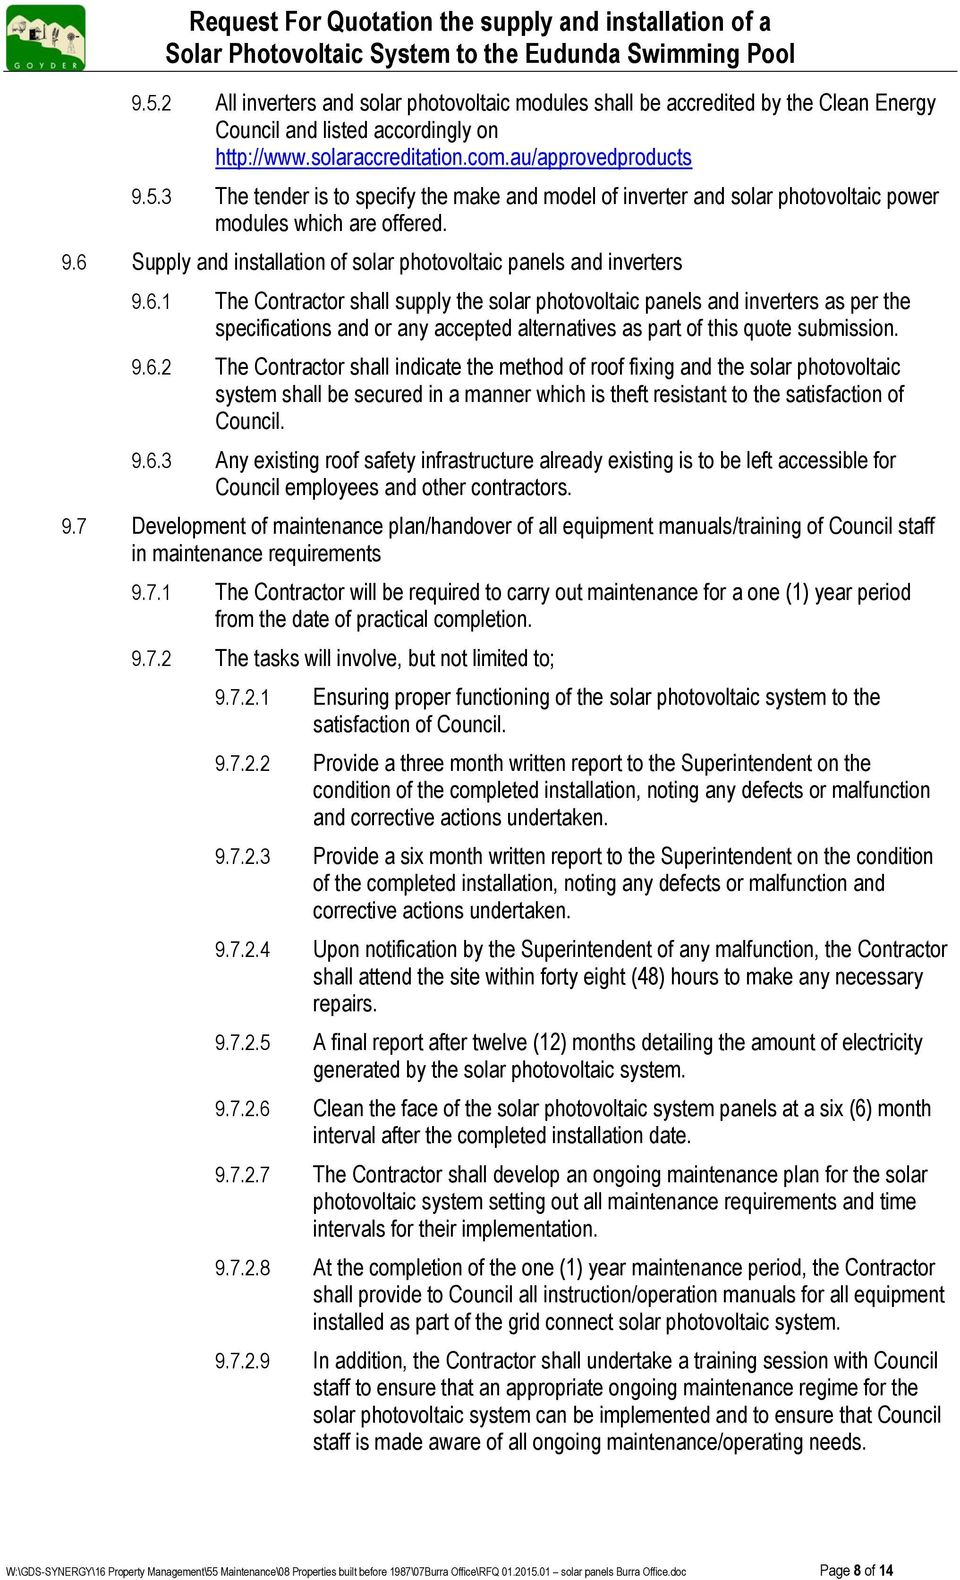 9.6.2 The Contractor shall indicate the method of roof fixing and the solar photovoltaic system shall be secured in a manner which is theft resistant to the satisfaction of Council. 9.6.3 Any existing roof safety infrastructure already existing is to be left accessible for Council employees and other contractors.